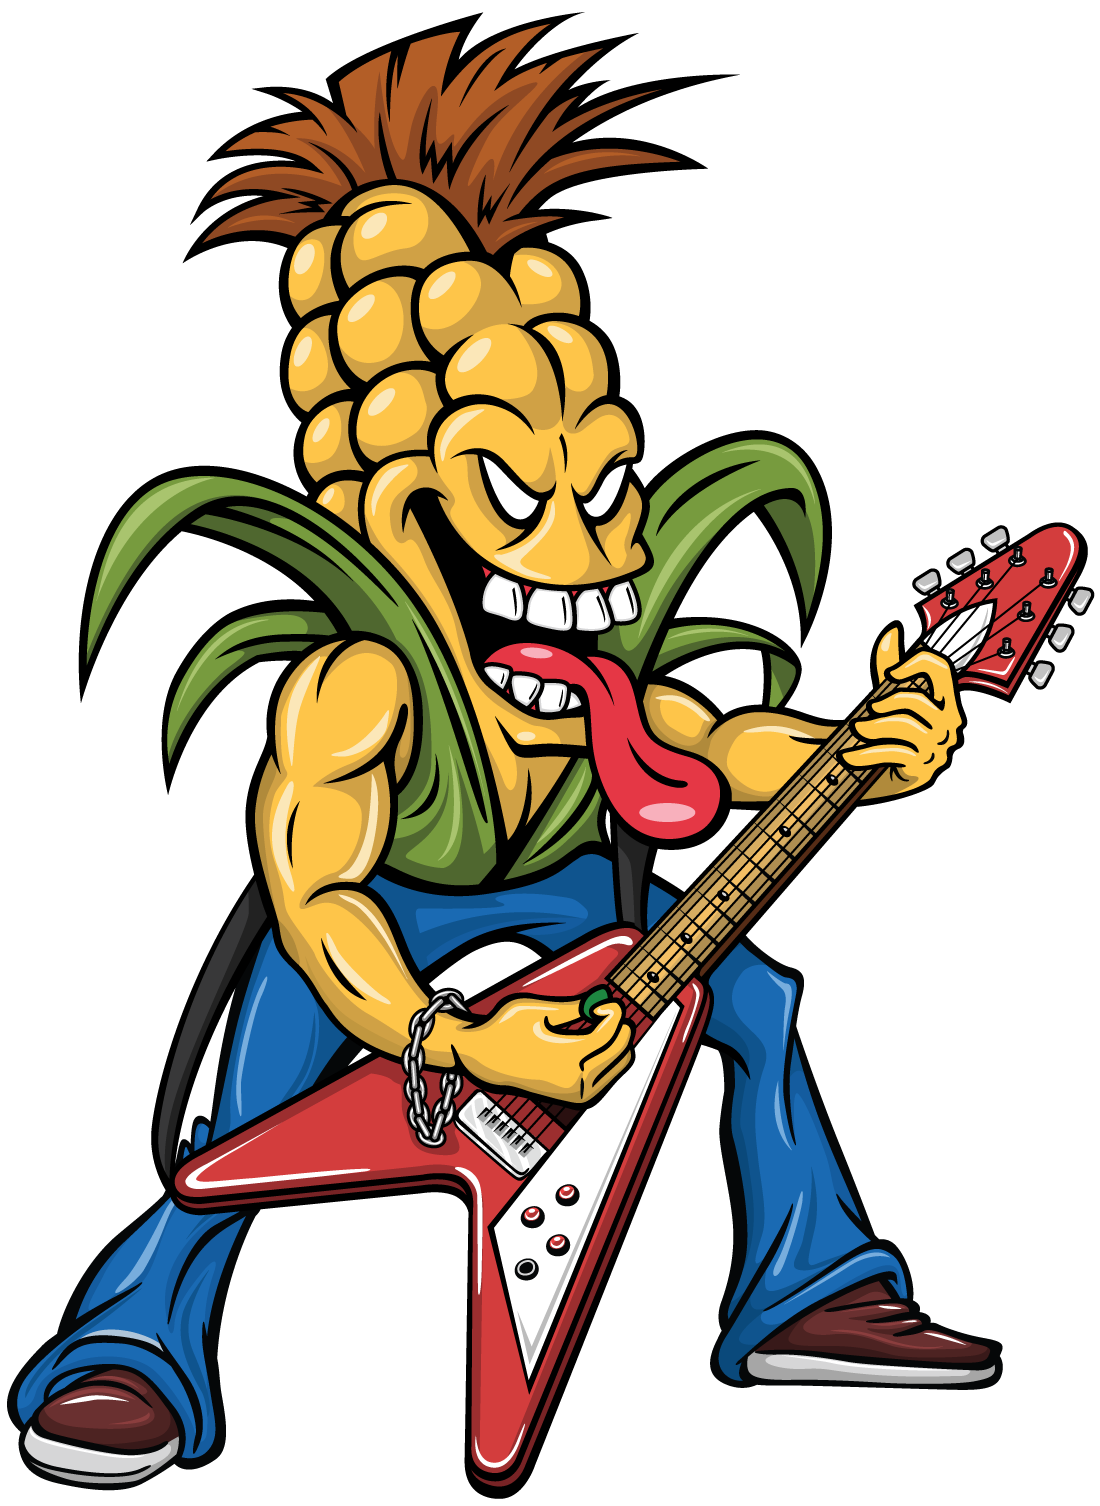 Metal Head Corn Mascot